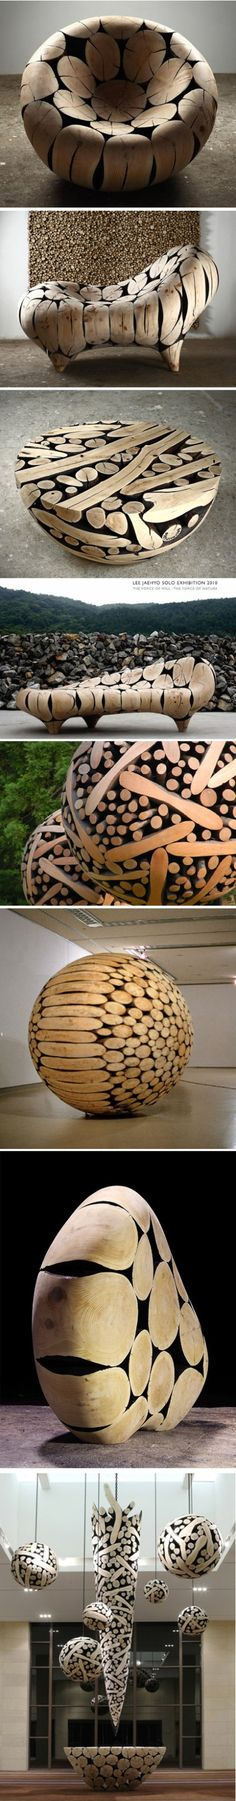 Korean artist Lee Hyo (Jaehyo Lee 1965-) sculptures.  With timber production, both natural feel, while strengthening the simple geometric beauty.